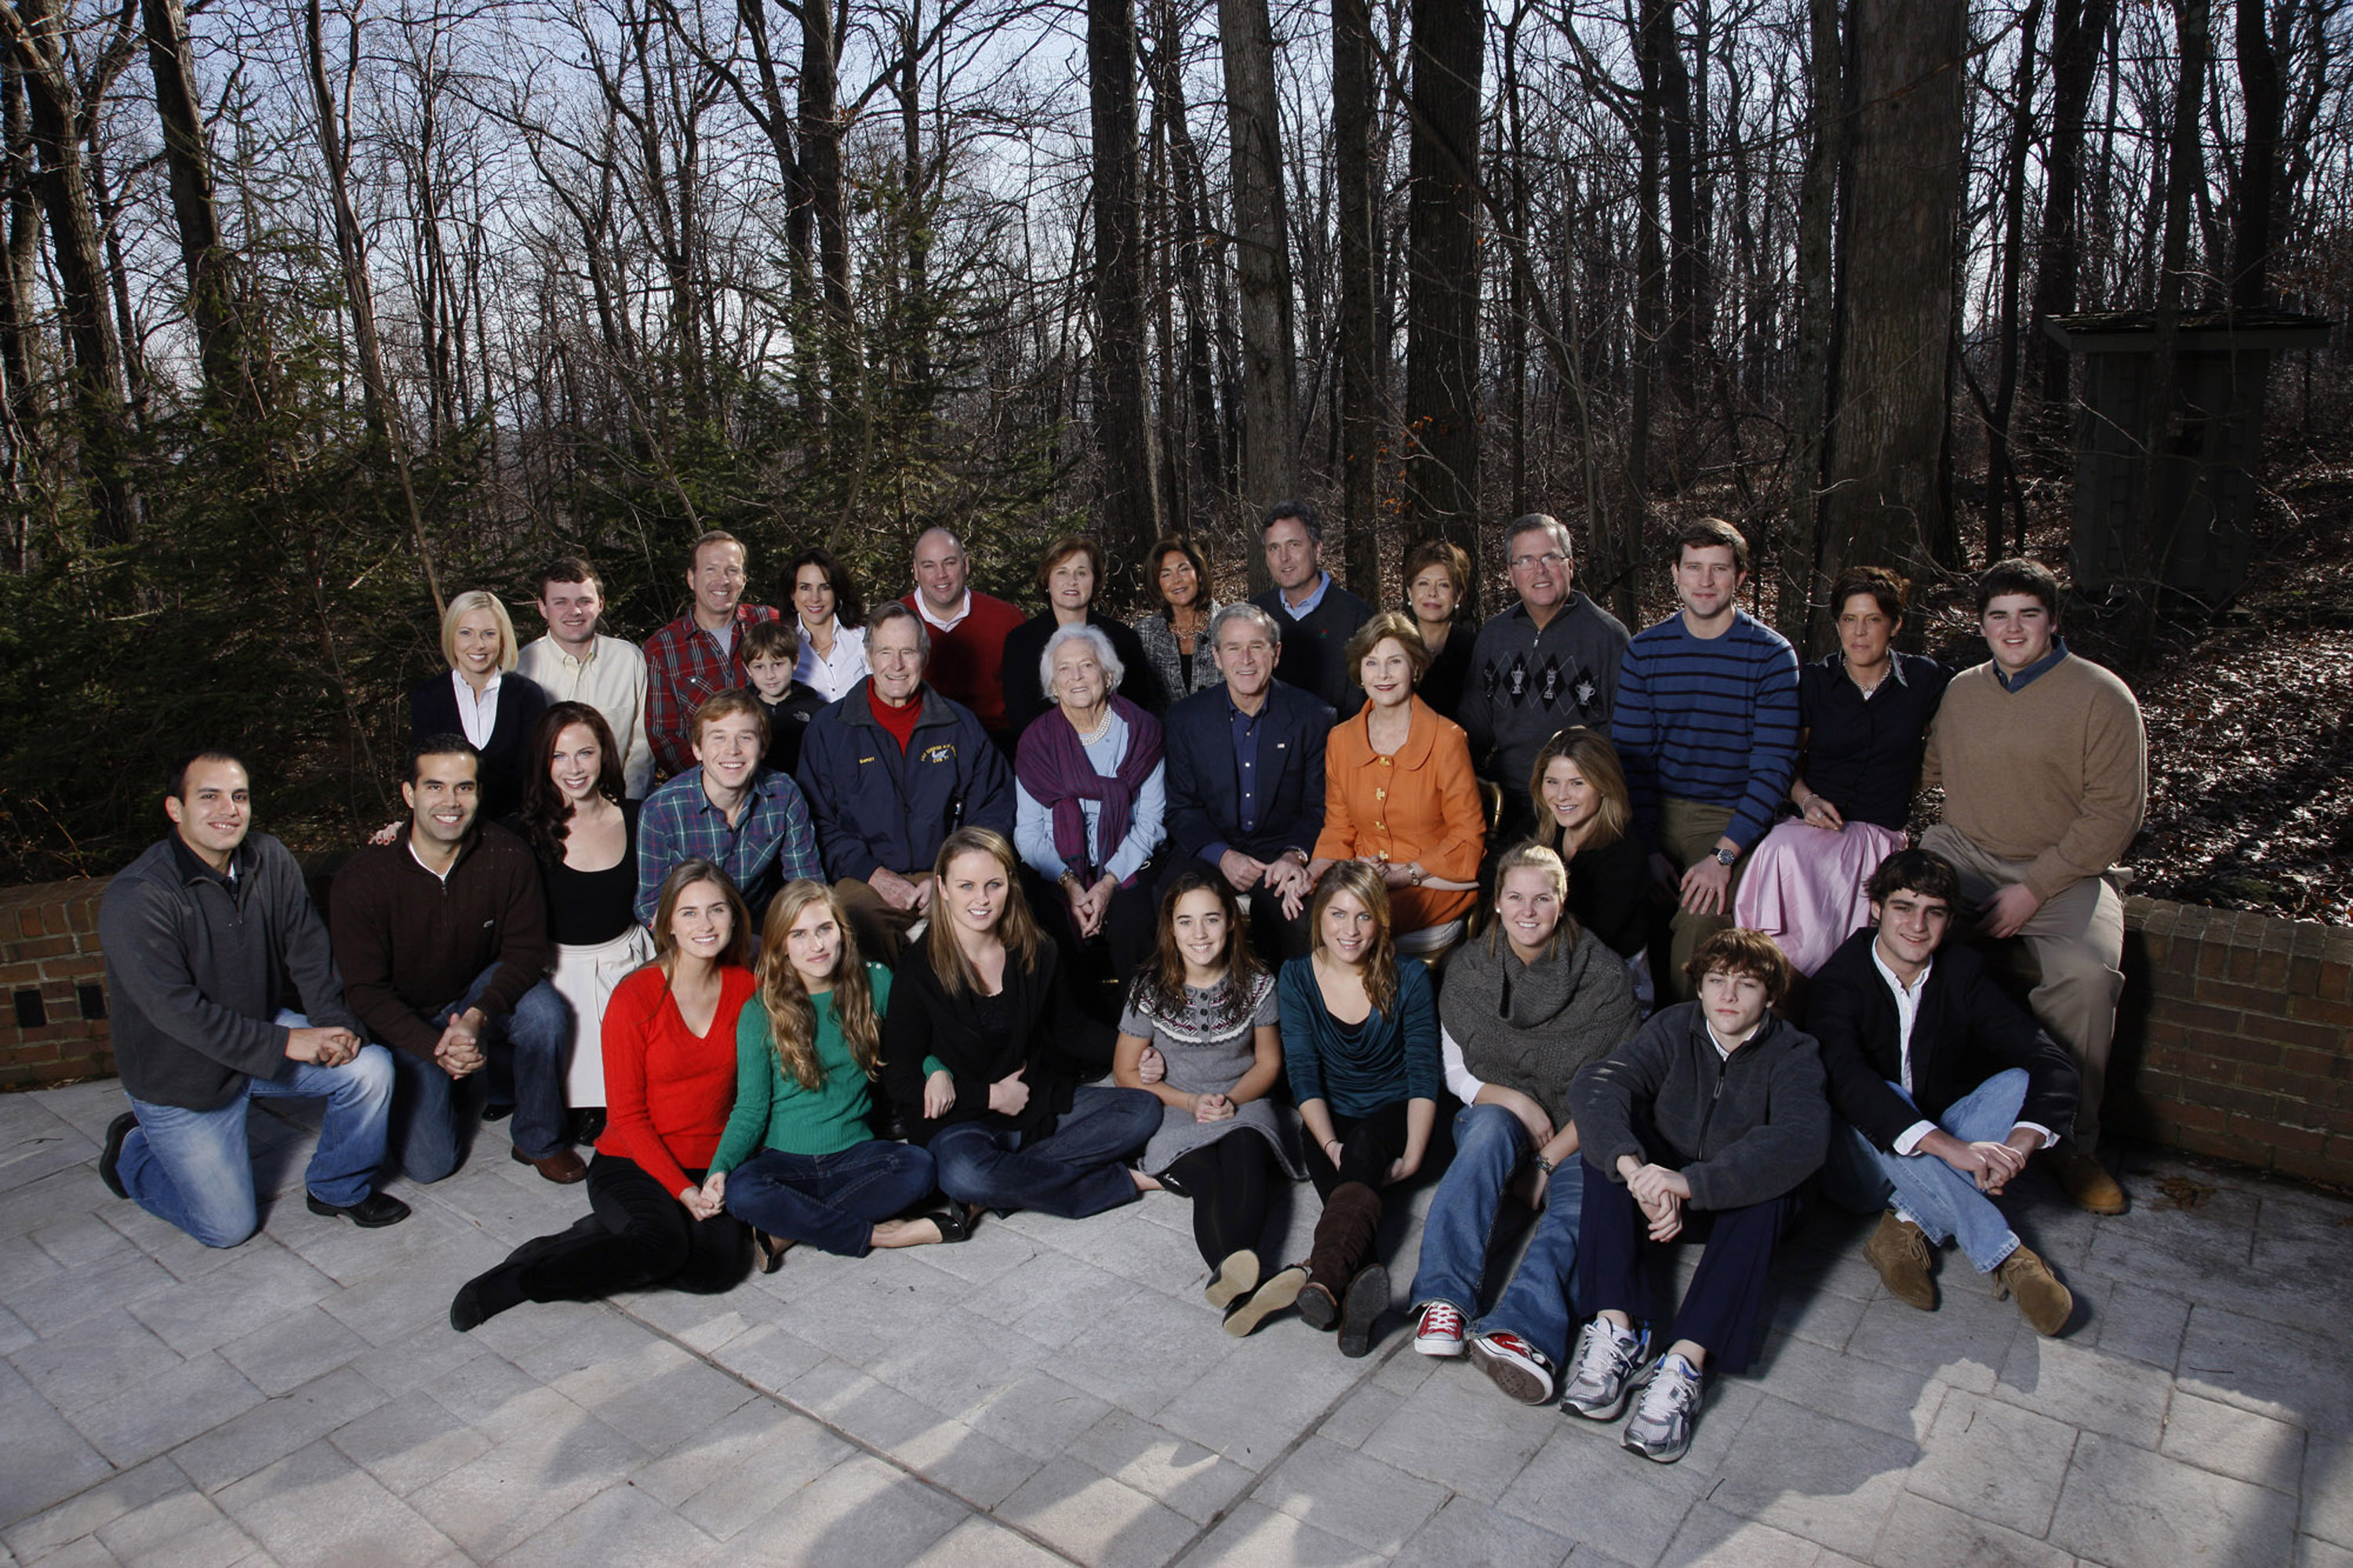 In this handout image provided by the White House, US President George W. Bush and family gather on Christmas December 25, 2008 at Camp David, Maryland. Seated front row, Lauren Bush, Ashley Bush, Ellie LeBlond, Gigi Koch, Elizabeth Andrews, Marshall Bush, Pace Andrews, Walker Bush. Second row, John E. Bush, George P. Bush, Barbara Bush, Pierce Bush, former US President George H.W. Bush, former First Lady Barbara Bush, President George W. Bush, First Lady Laura Bush, Jenna Hager.